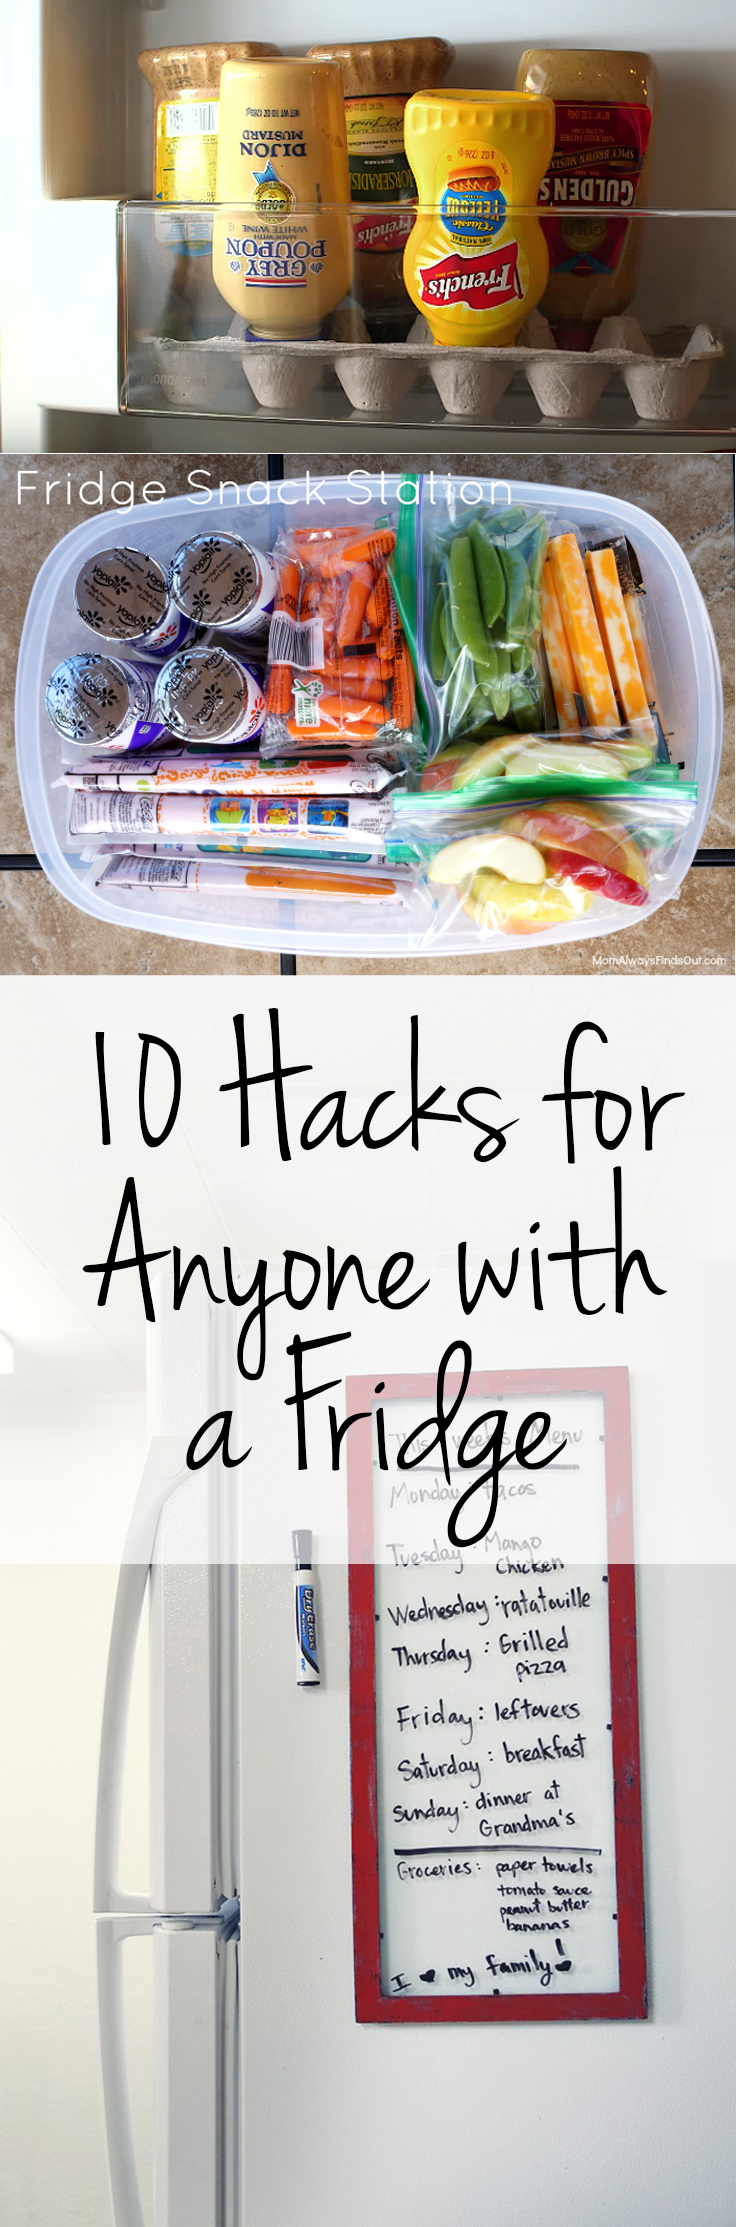 Organization, Home Organization, Fridge Hacks, Popular Pin, Cleaning TIps and Tricks, Kitchen, Kitchen Storage, Kitchen Hacks, Cooking Hacks